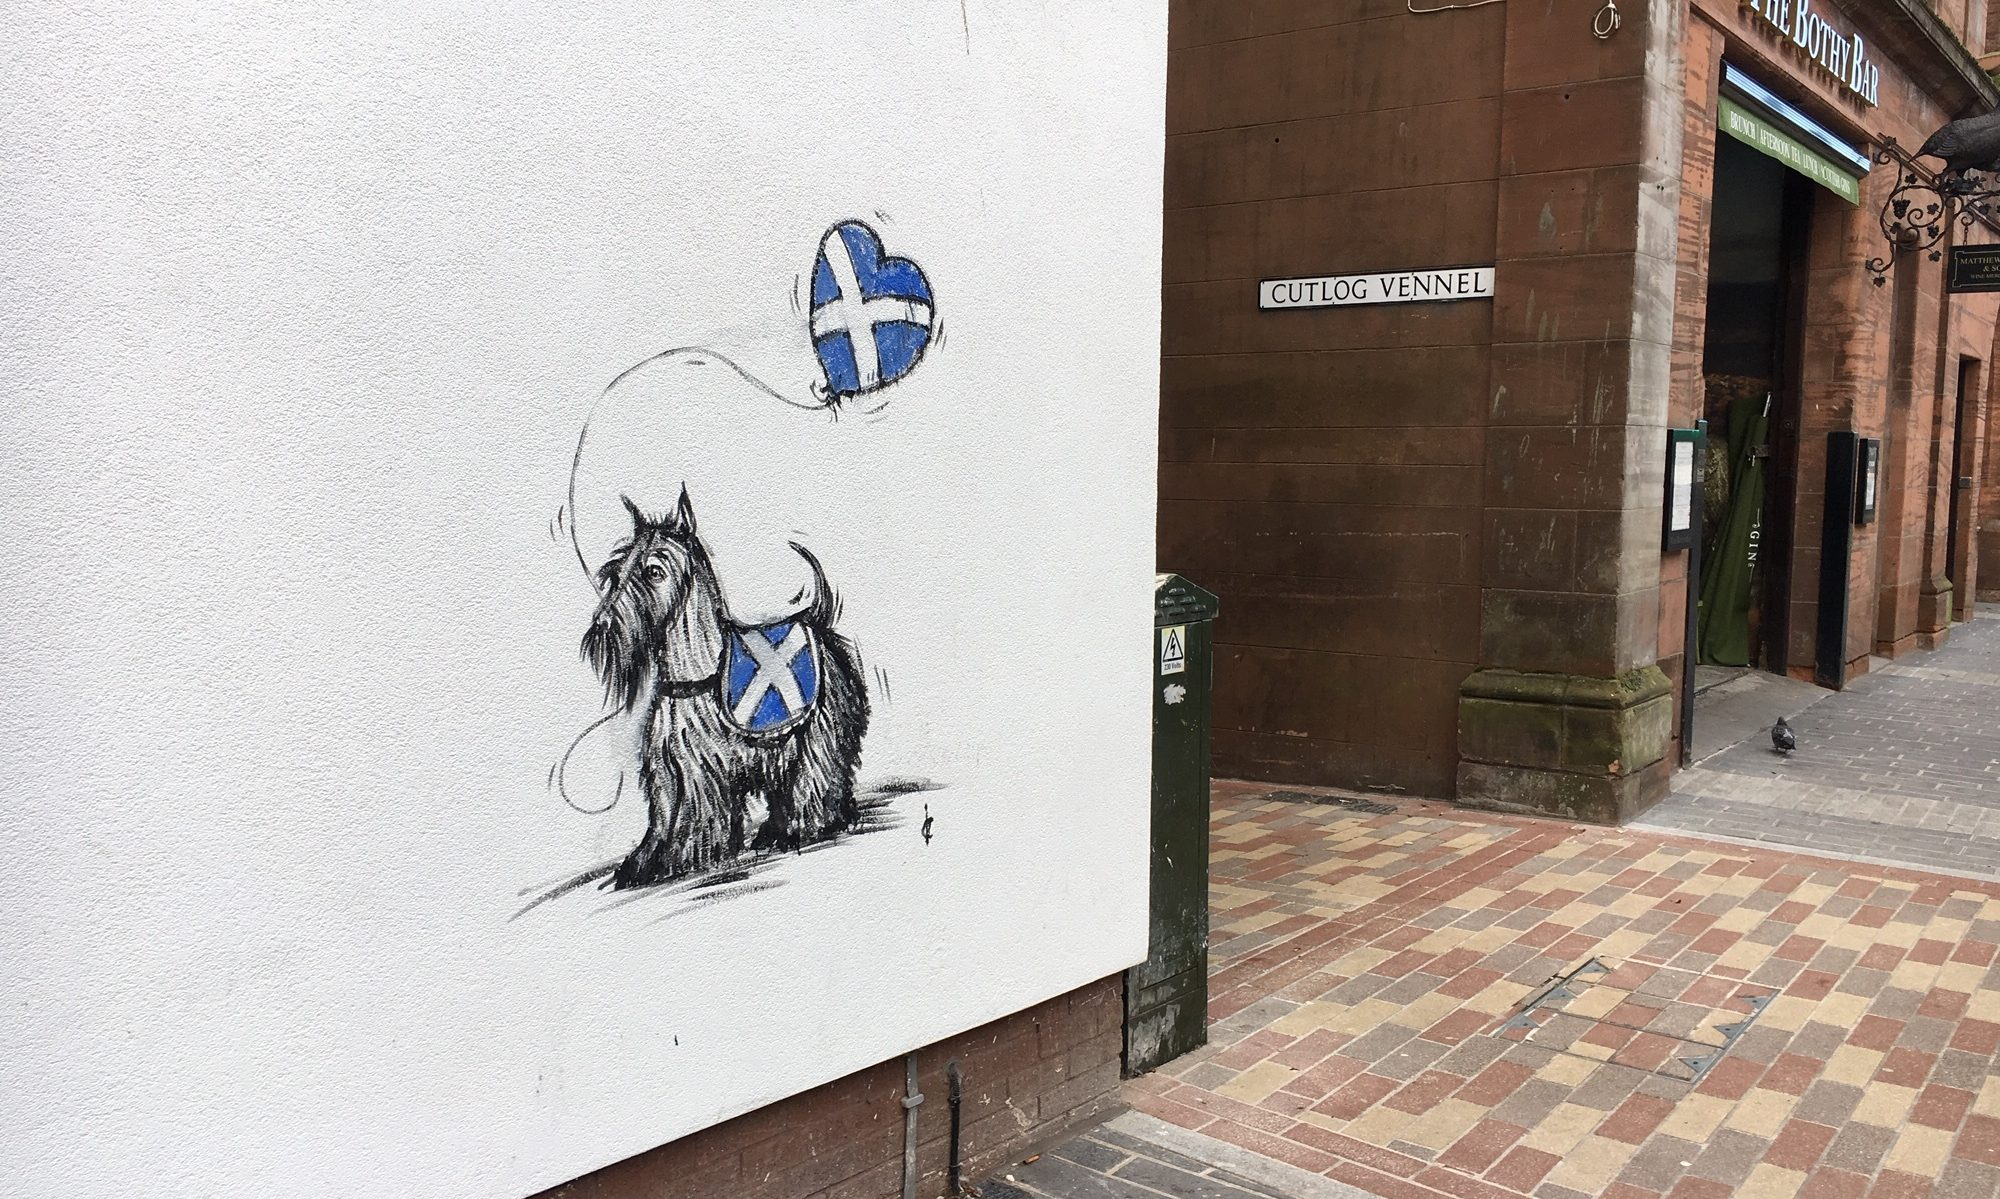 Ian Cuthbert Imrie's latest on-street artwork.